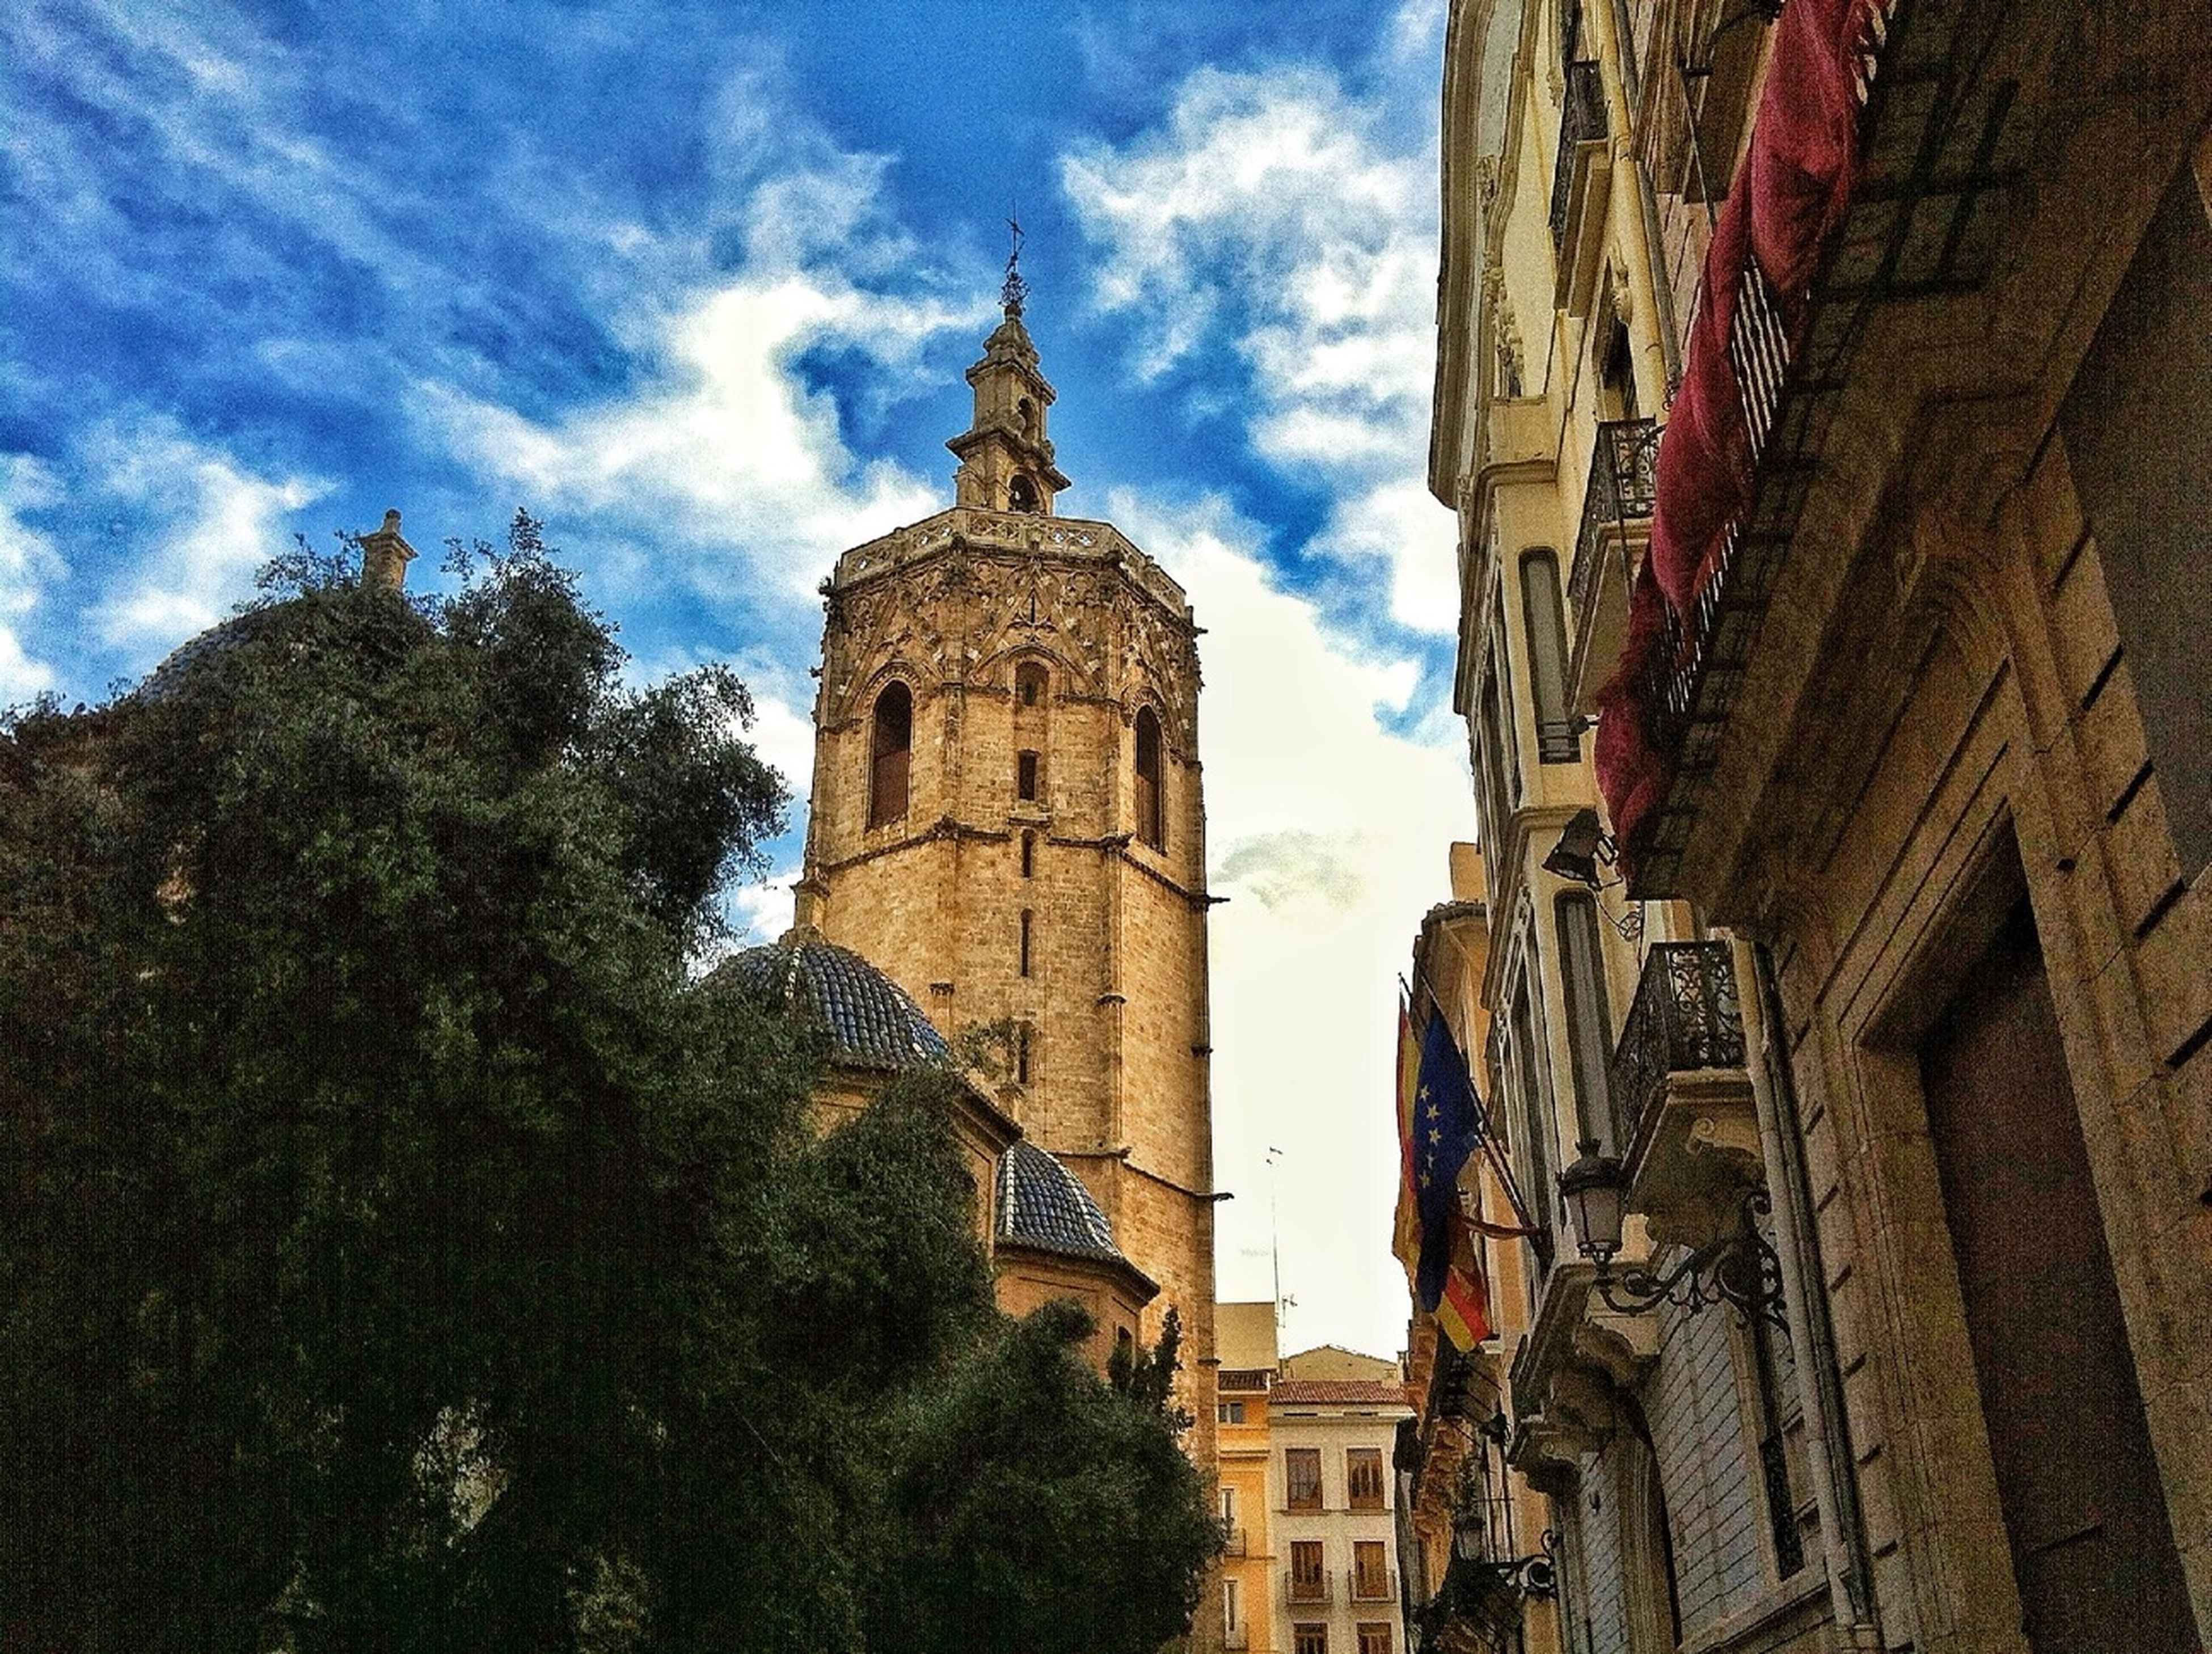 architecture, building exterior, built structure, low angle view, sky, tree, church, tower, religion, history, place of worship, cloud, cloud - sky, clock tower, spirituality, travel destinations, day, city, blue